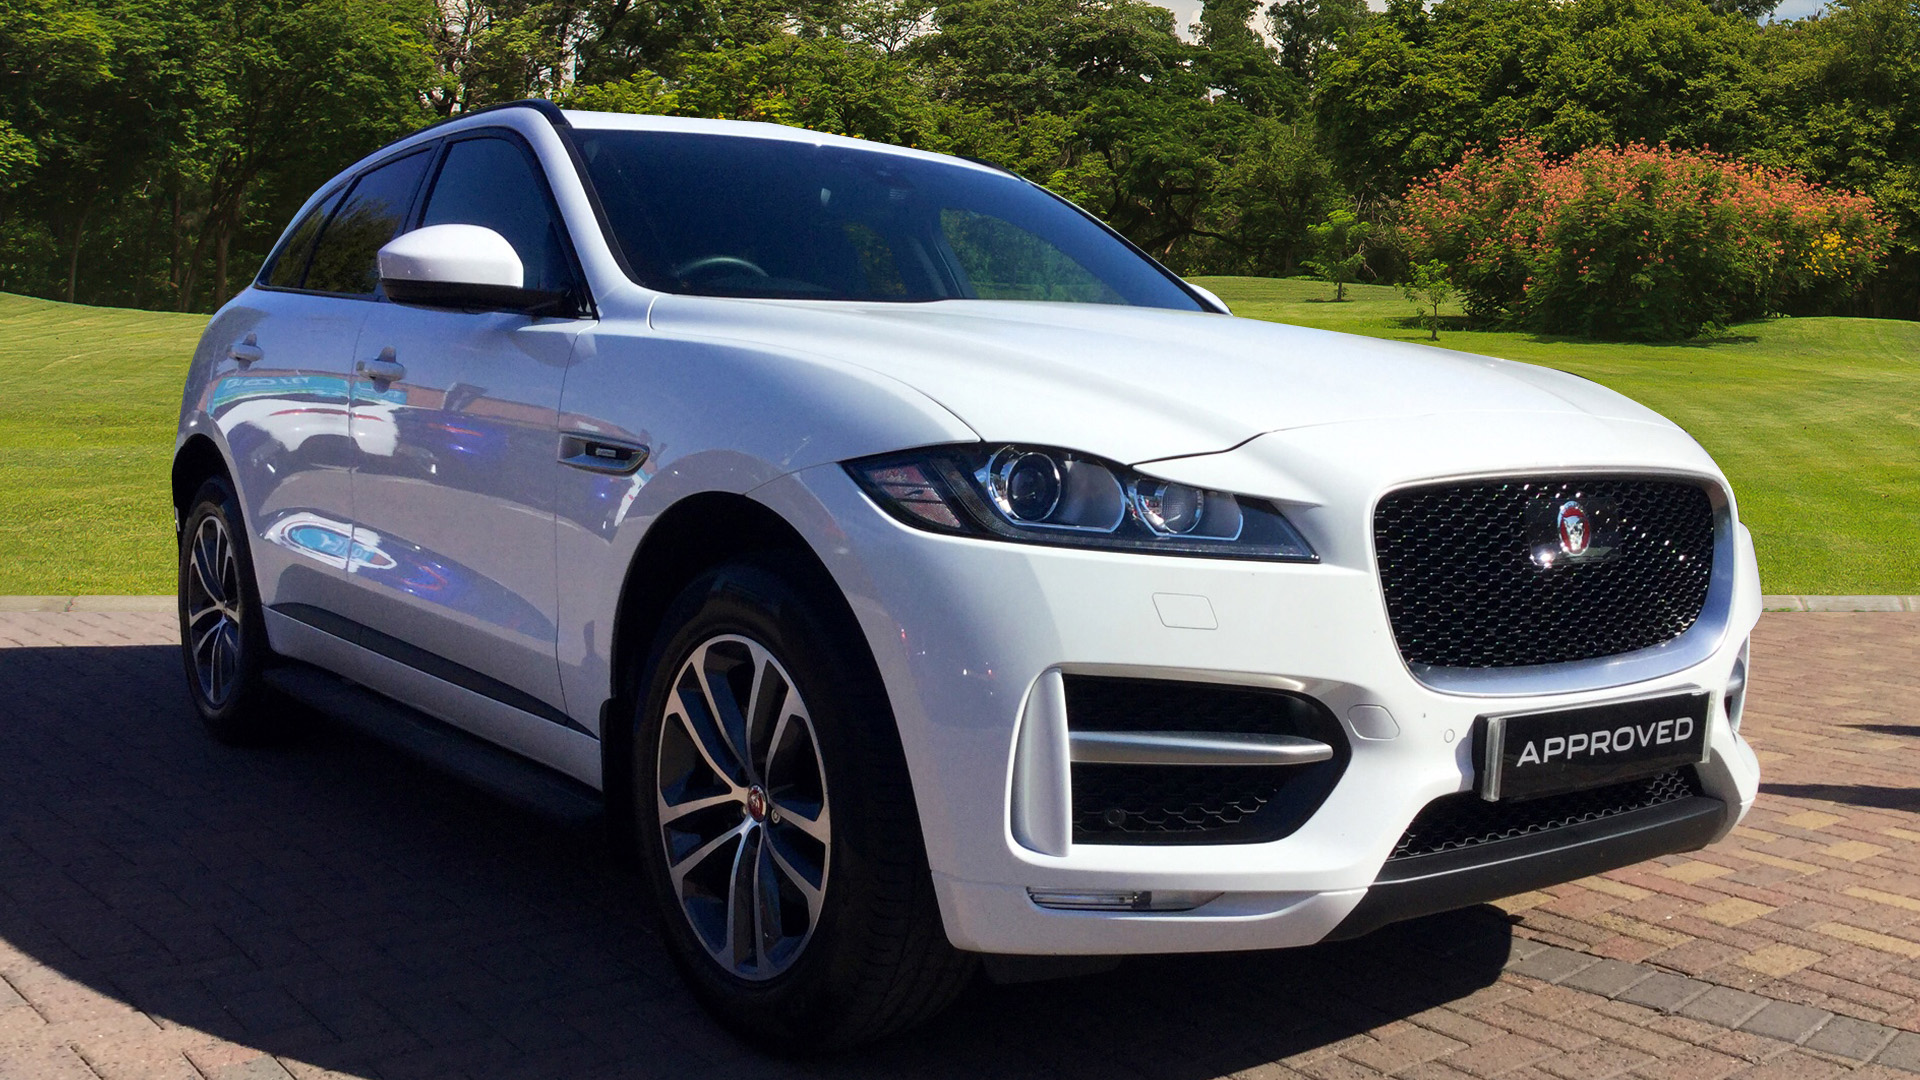 Used Jaguar F Pace 2 0D R Sport 5Dr Auto Awd Diesel Estate for Sale